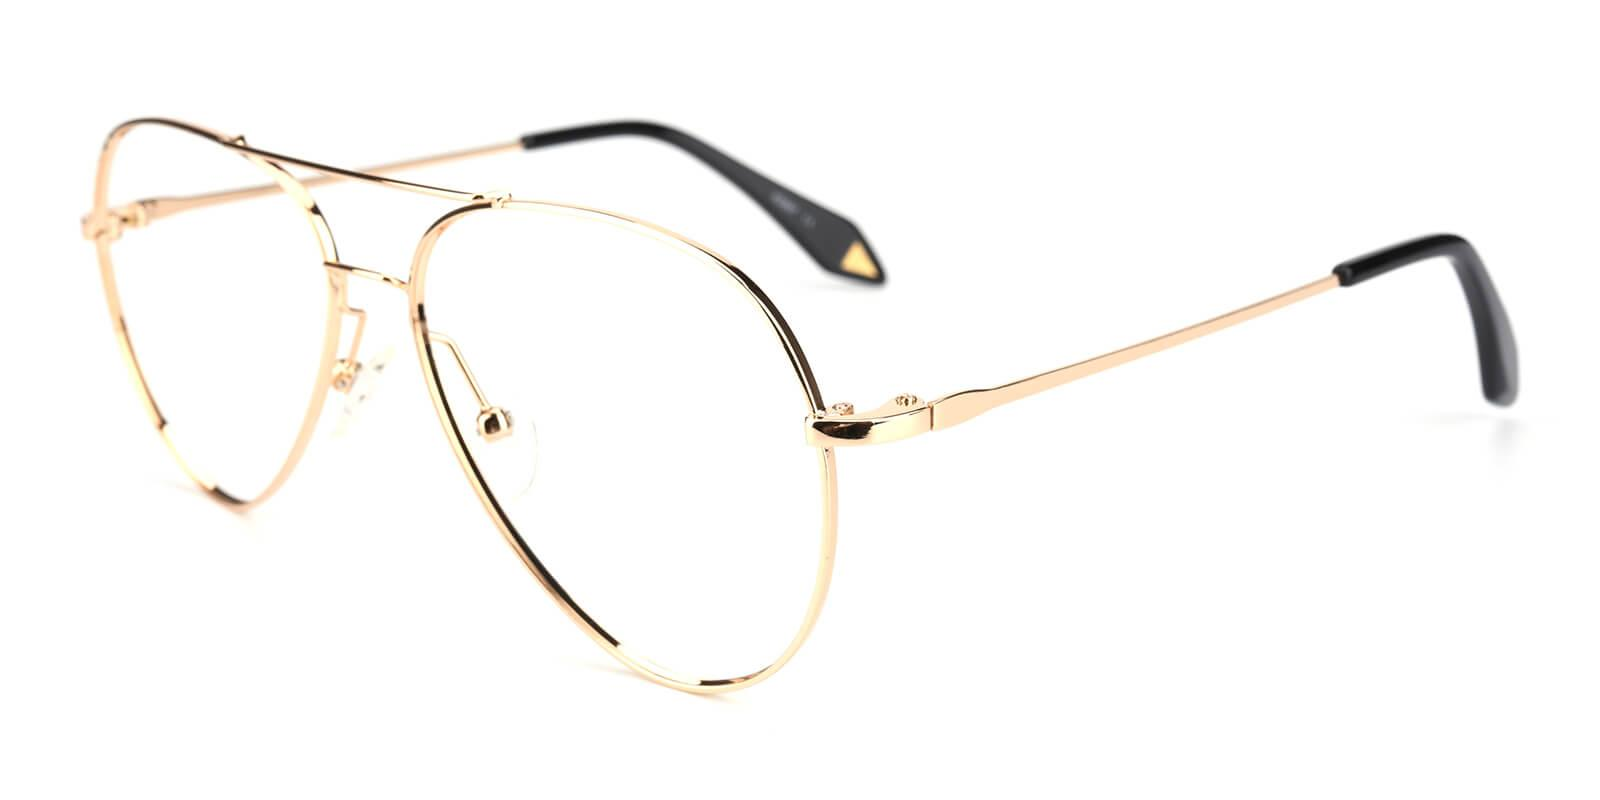 Pilot-Gold-Aviator-Metal-Eyeglasses-additional1